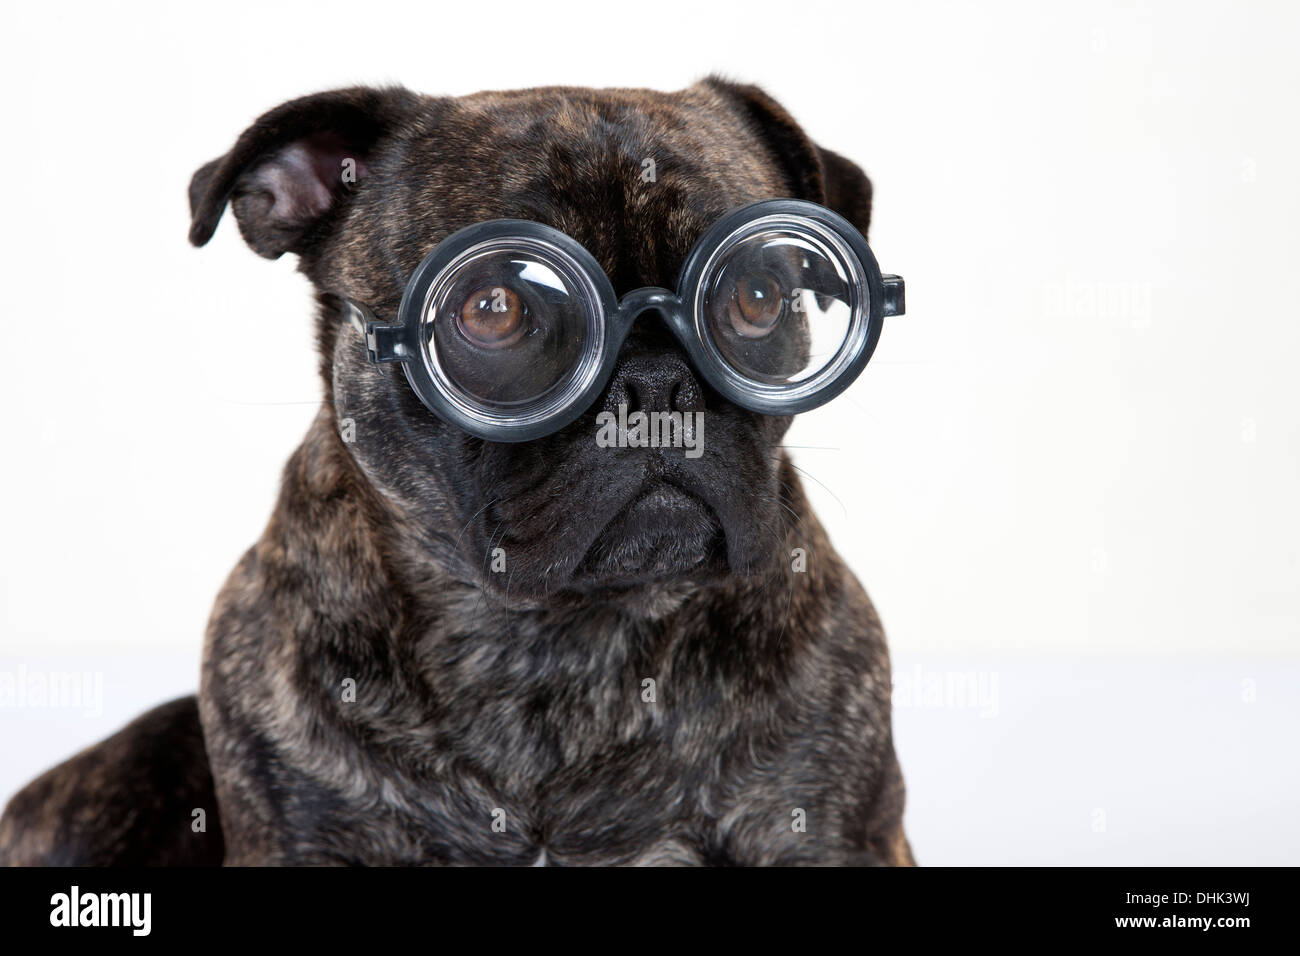 pug french bull dog with glasses - Stock Image